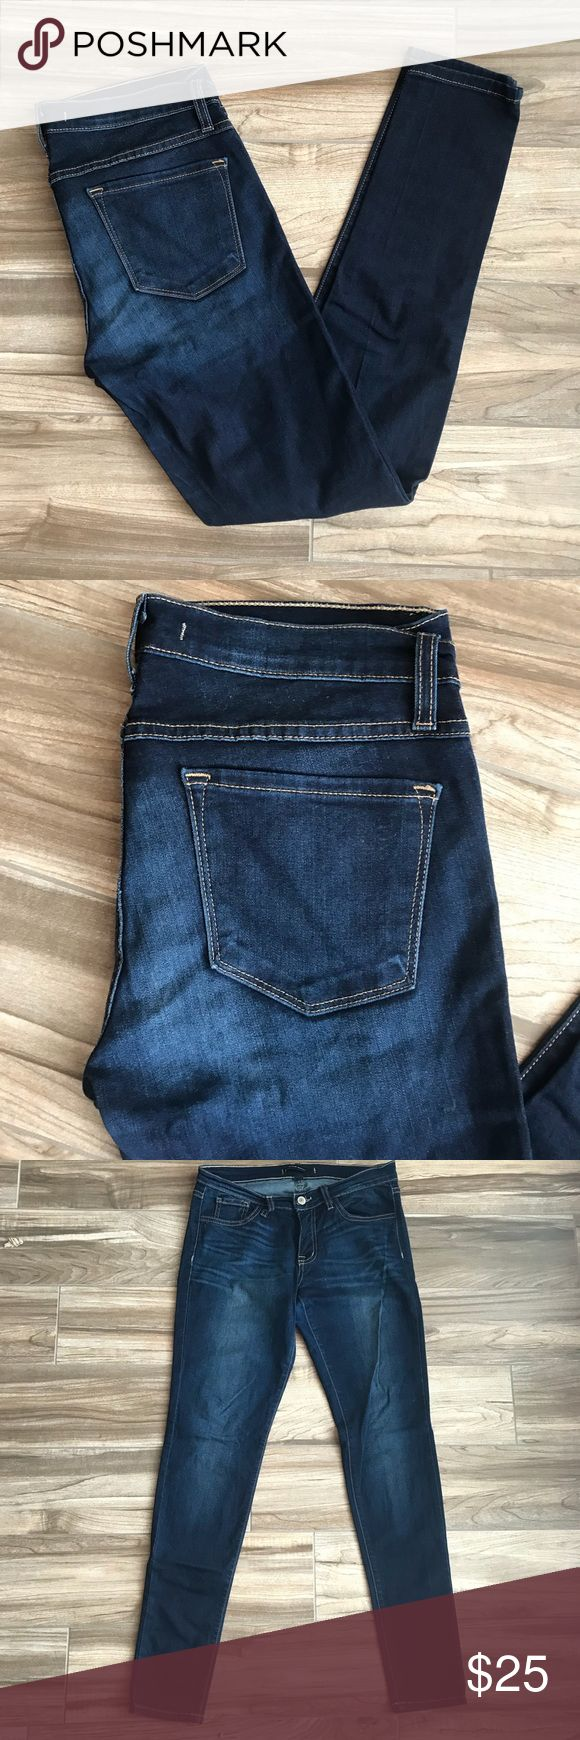 Size 28 flying monkey jeans Dark wash skinny Brand: flying monkey   Tag size: 28  Condition: very slightly worn   Color: Dark blue   Design: Skinny  Material: 68% Cotton 26% rayon 12% polyester 2% spandex   Contact me for any additional measurements or sizing. flying monkey Jeans Skinny